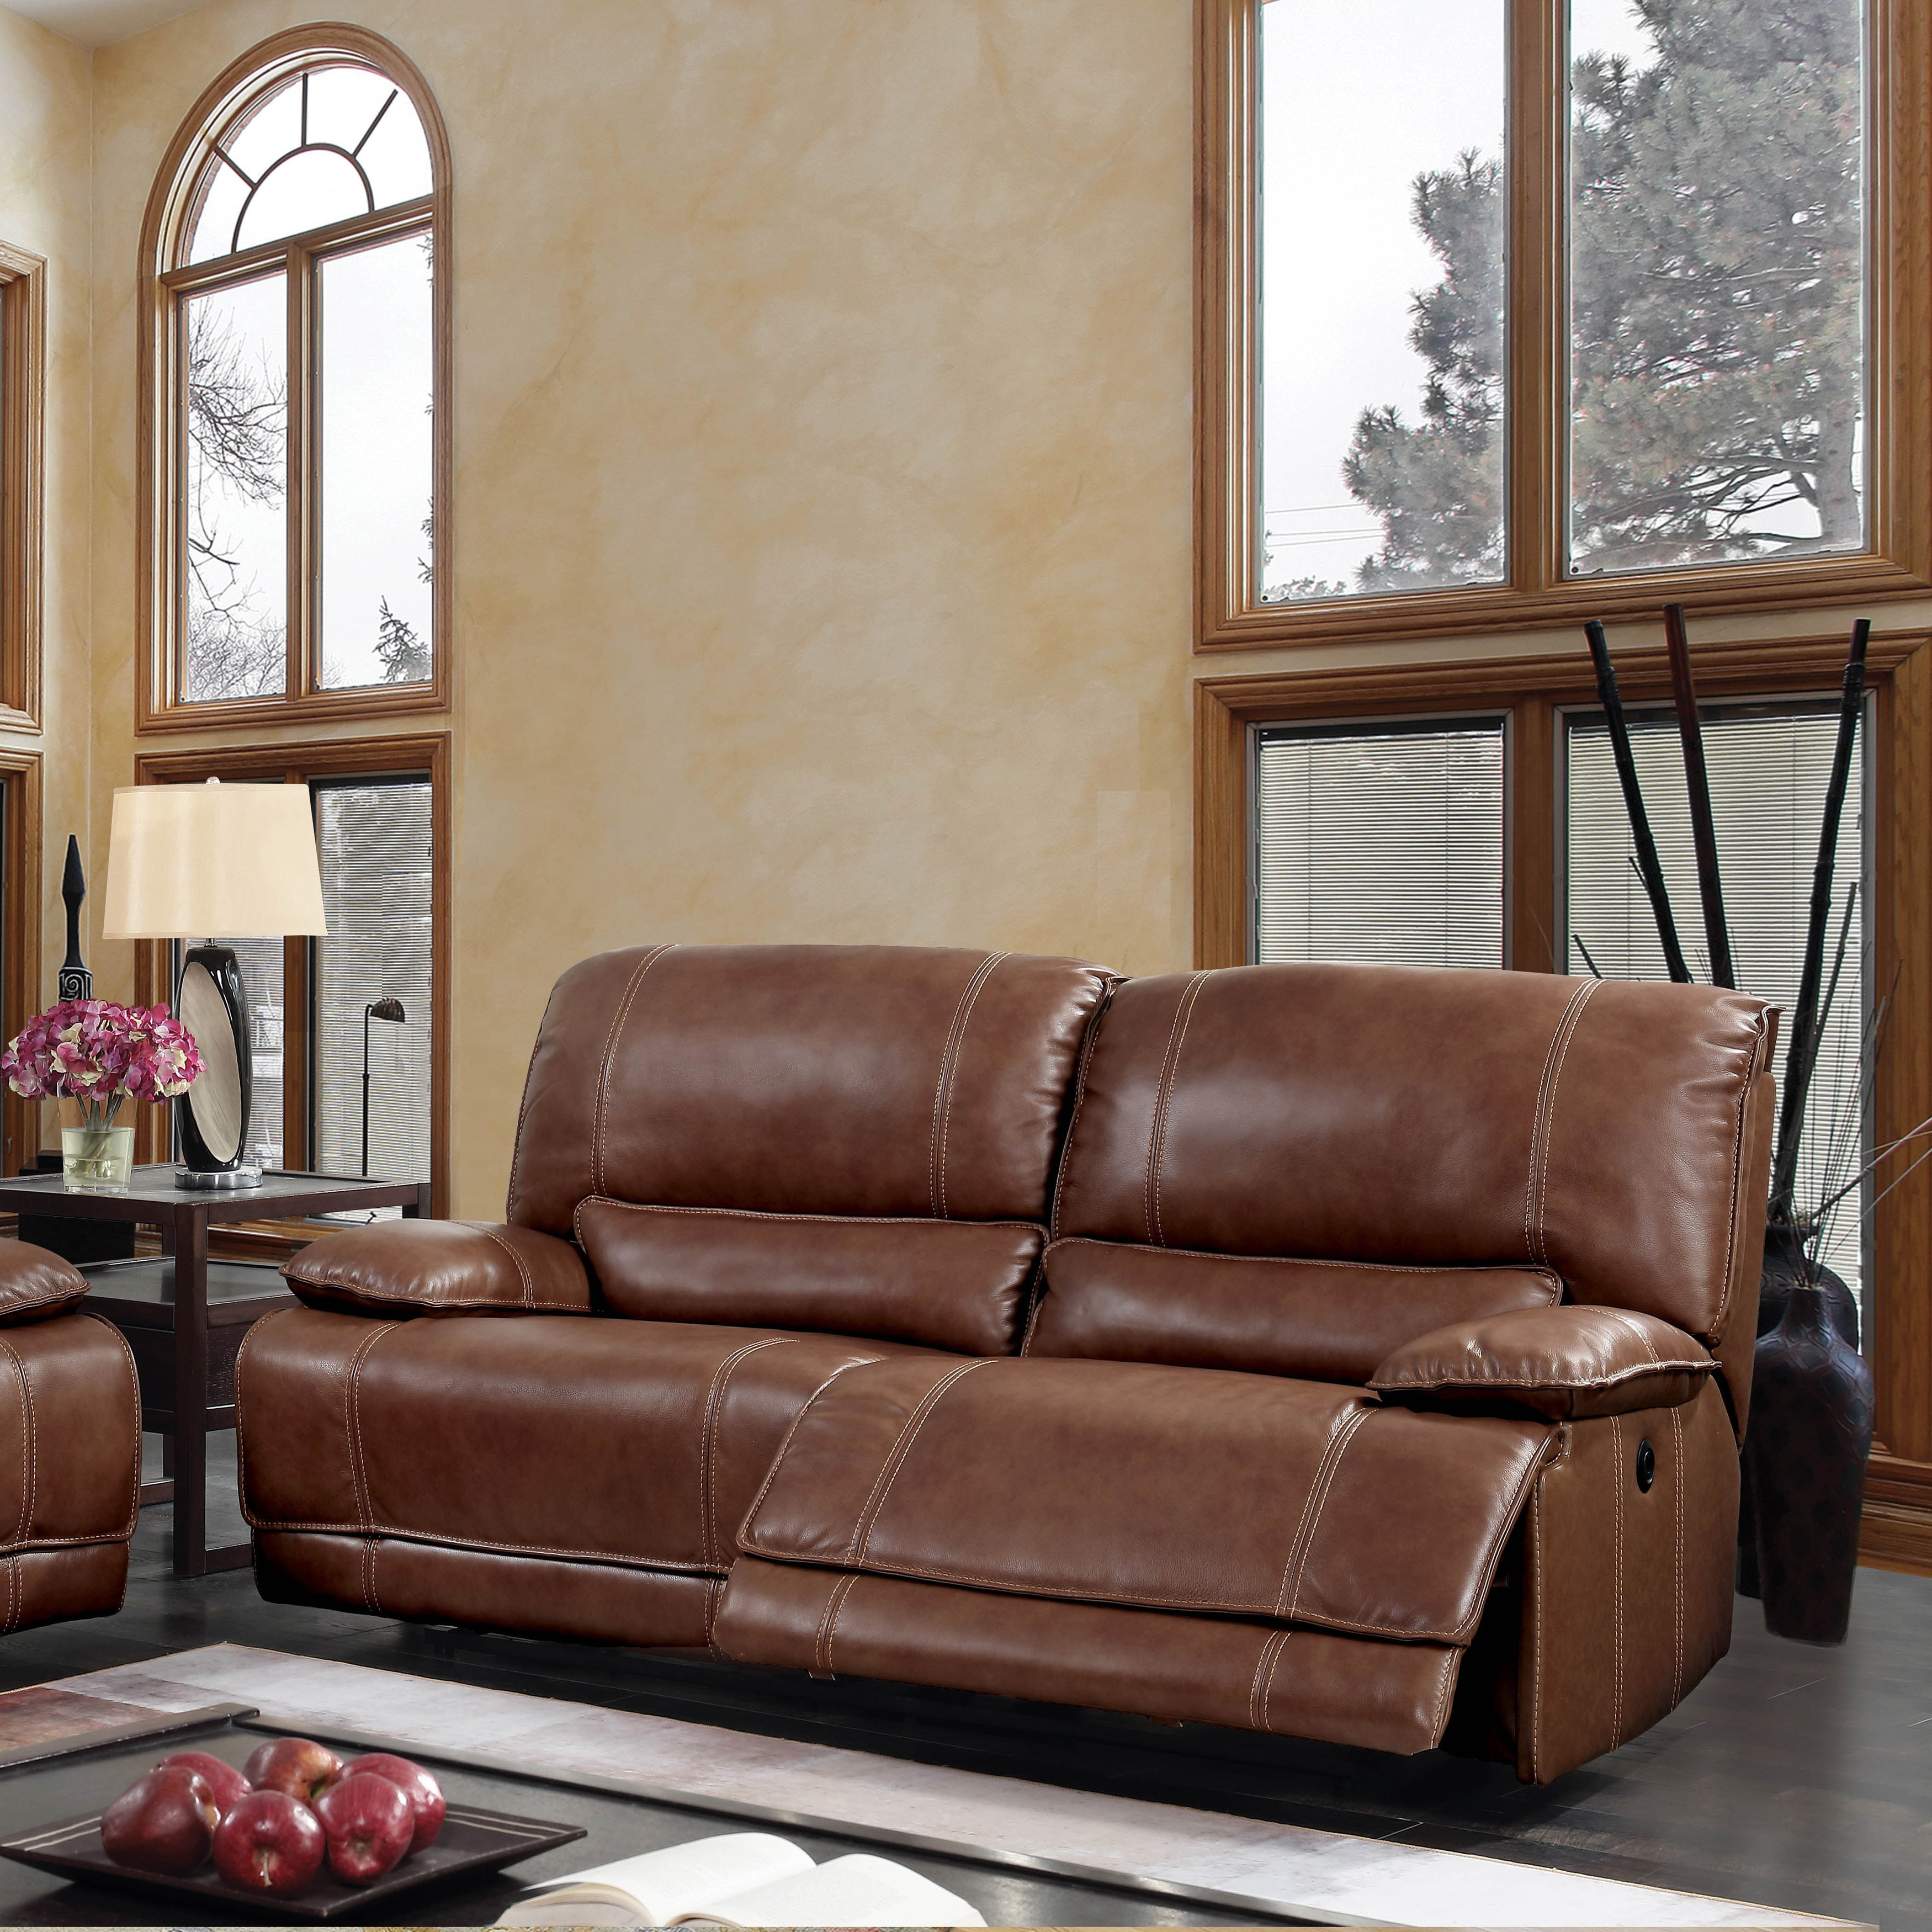 Shop Furniture Of America Sierra Brown Leather Usb Power Assist Sofa In Well Known Sierra Foam Ii Oversized Sofa Chairs (View 15 of 20)